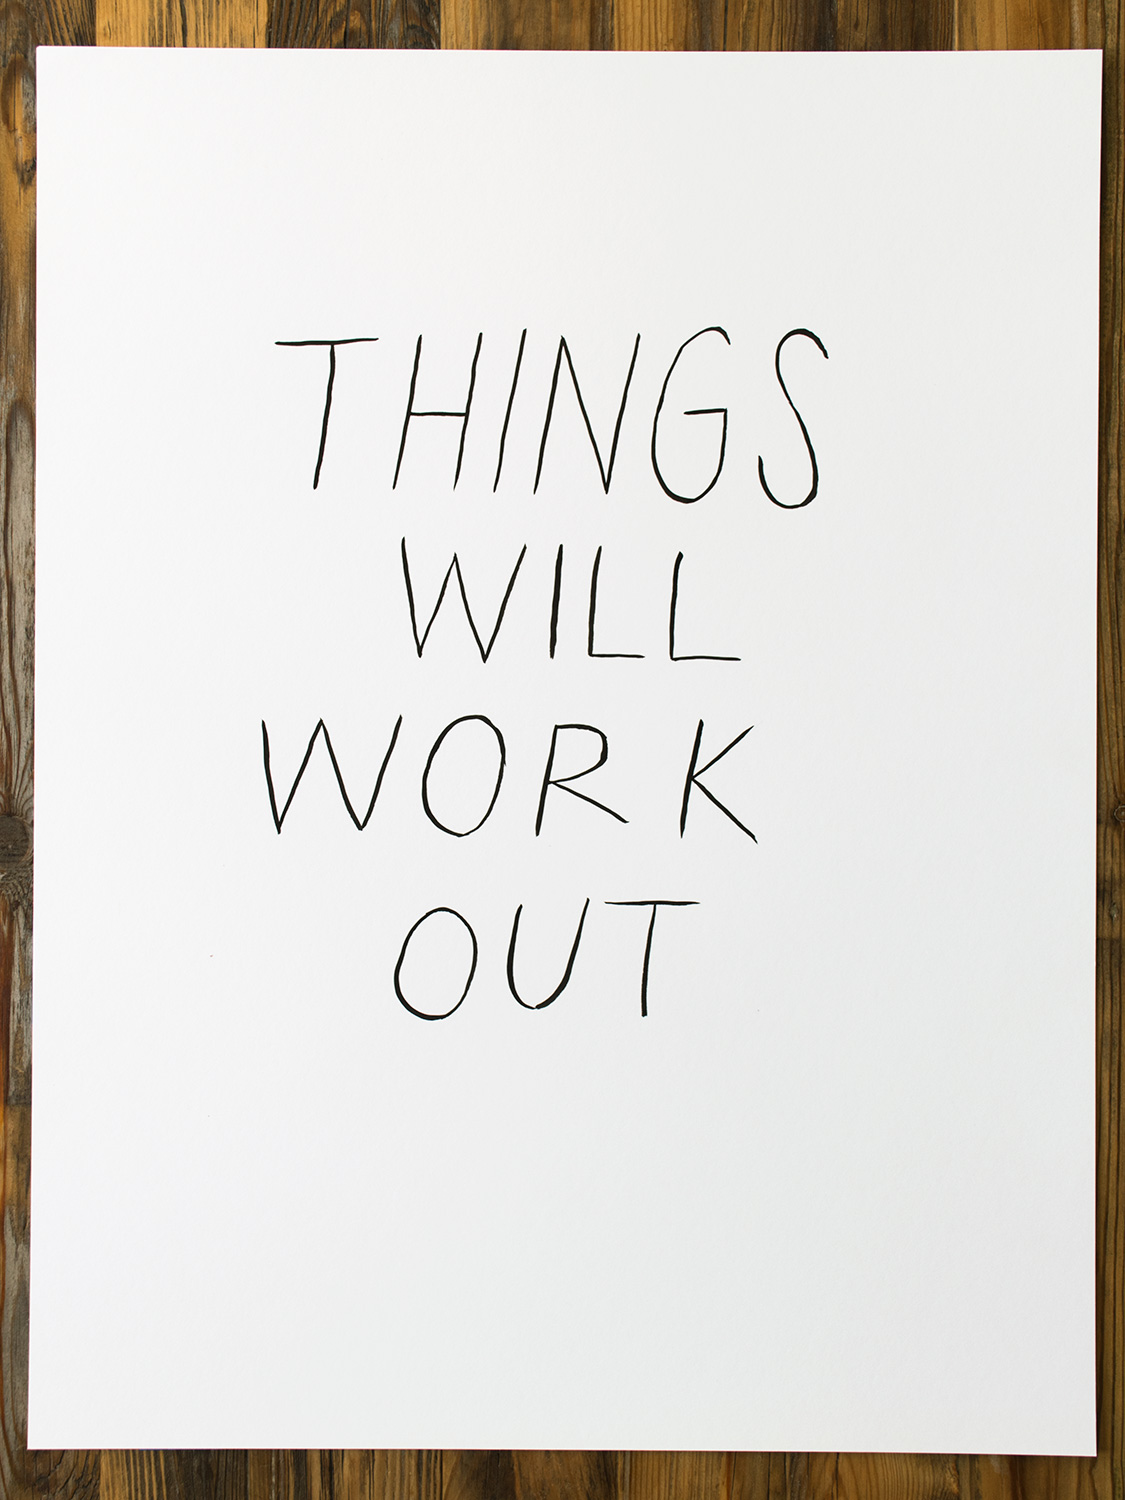 things_will_work_out-1500x1125.jpg